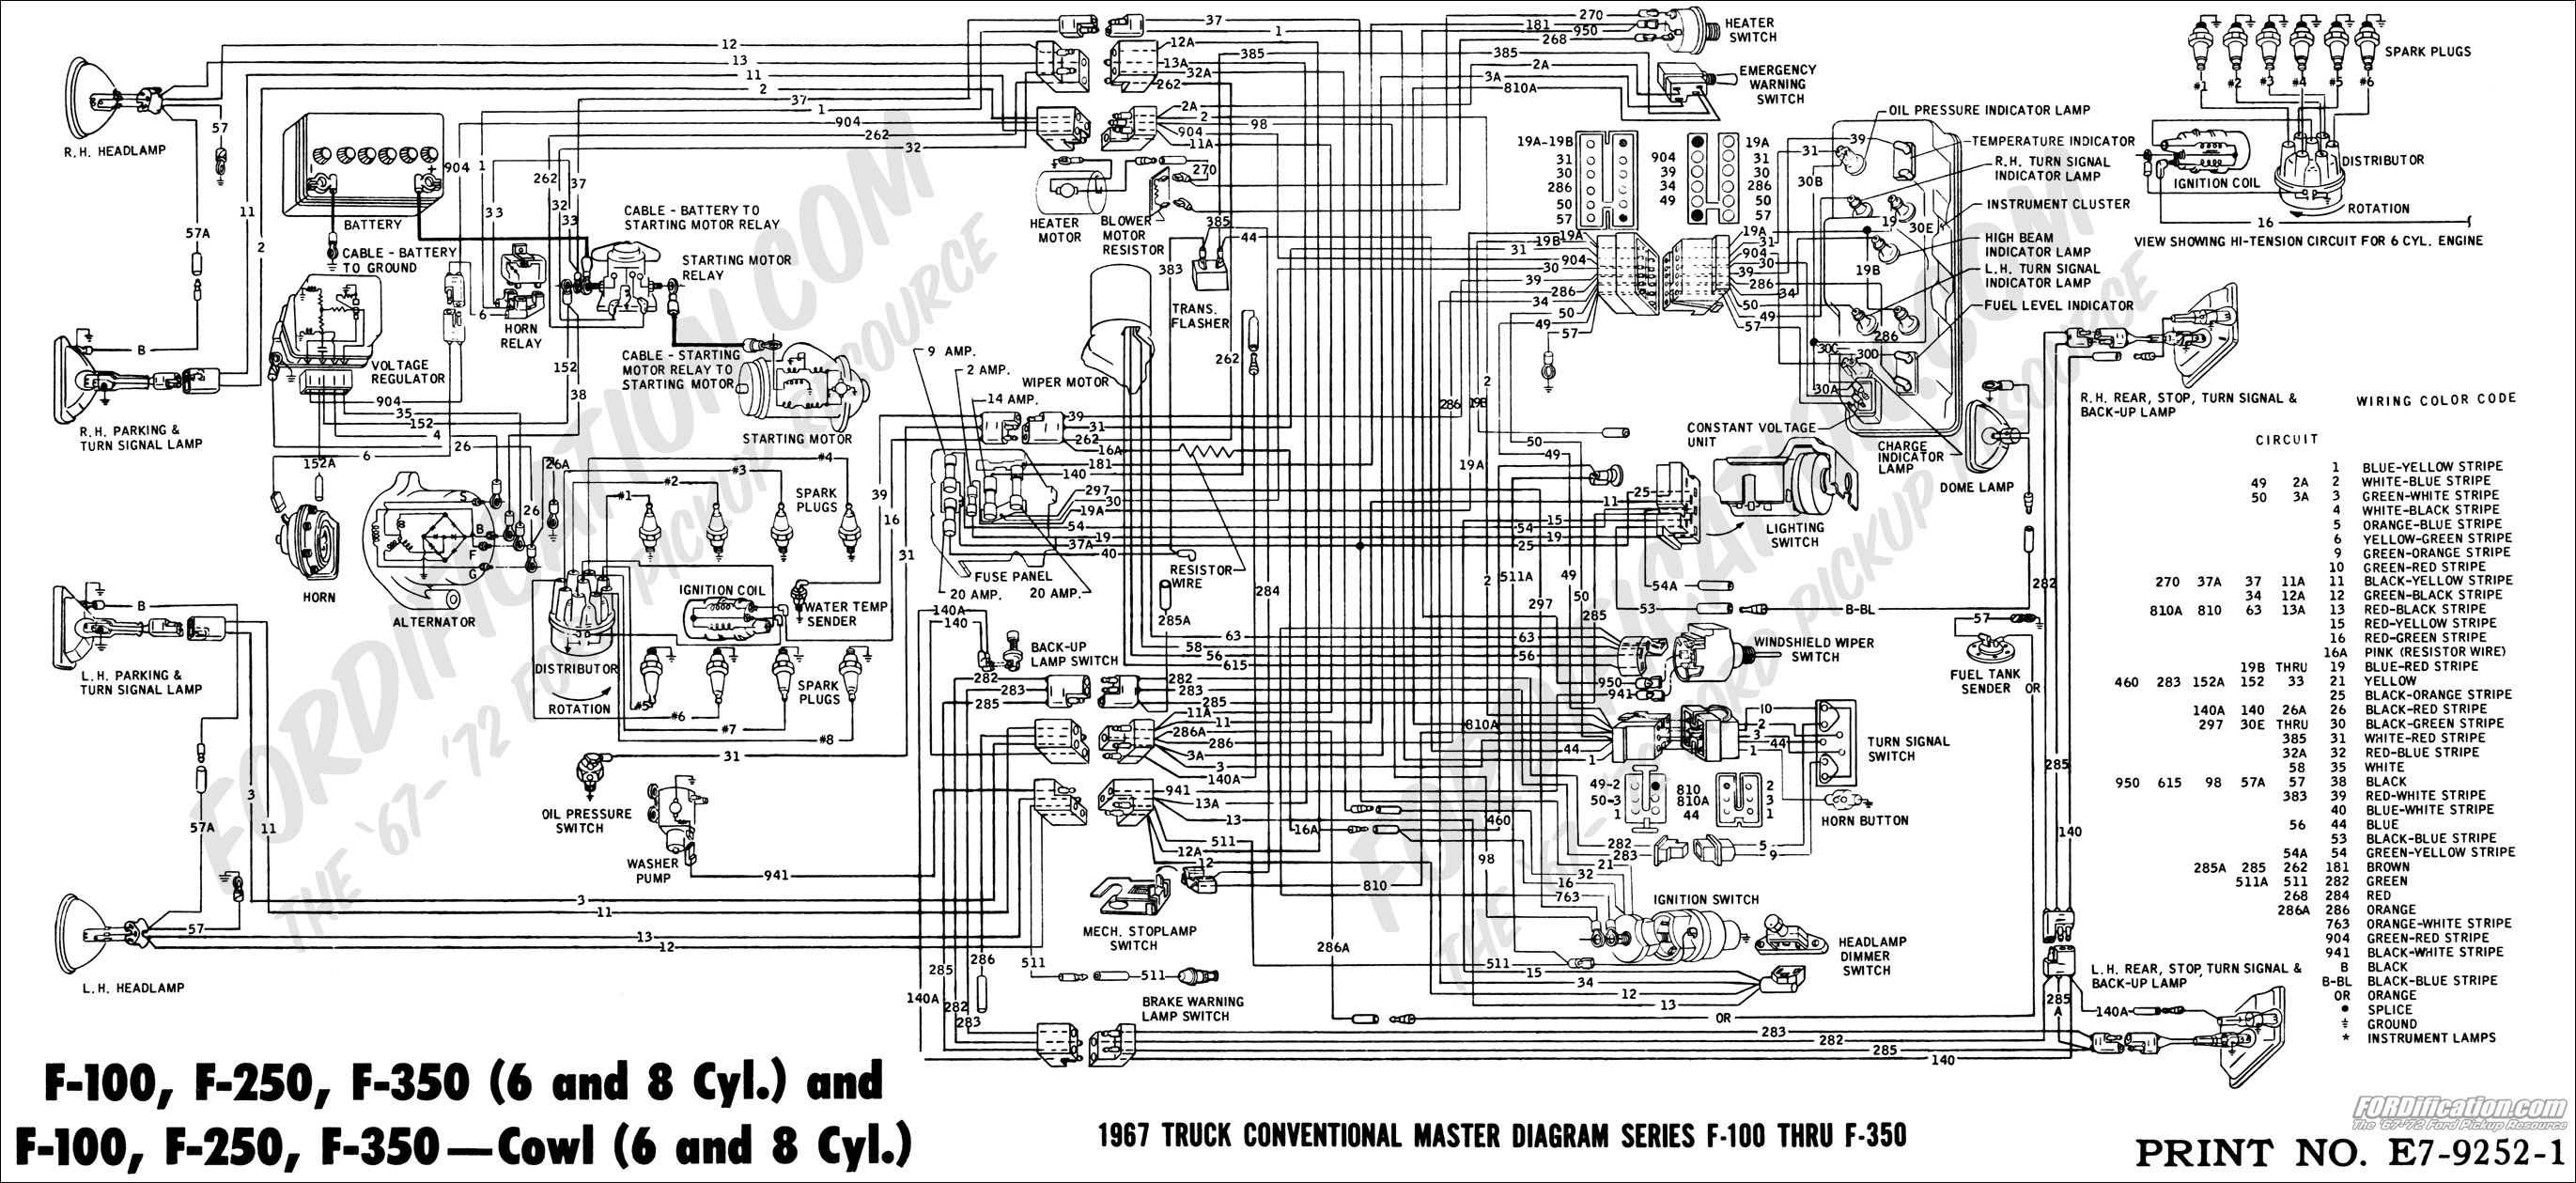 1989 F150 Wiring Diagram Will Be A Thing 89 Tachometer Ford Detailed Schematics Rh Keyplusrubber Com Alternator